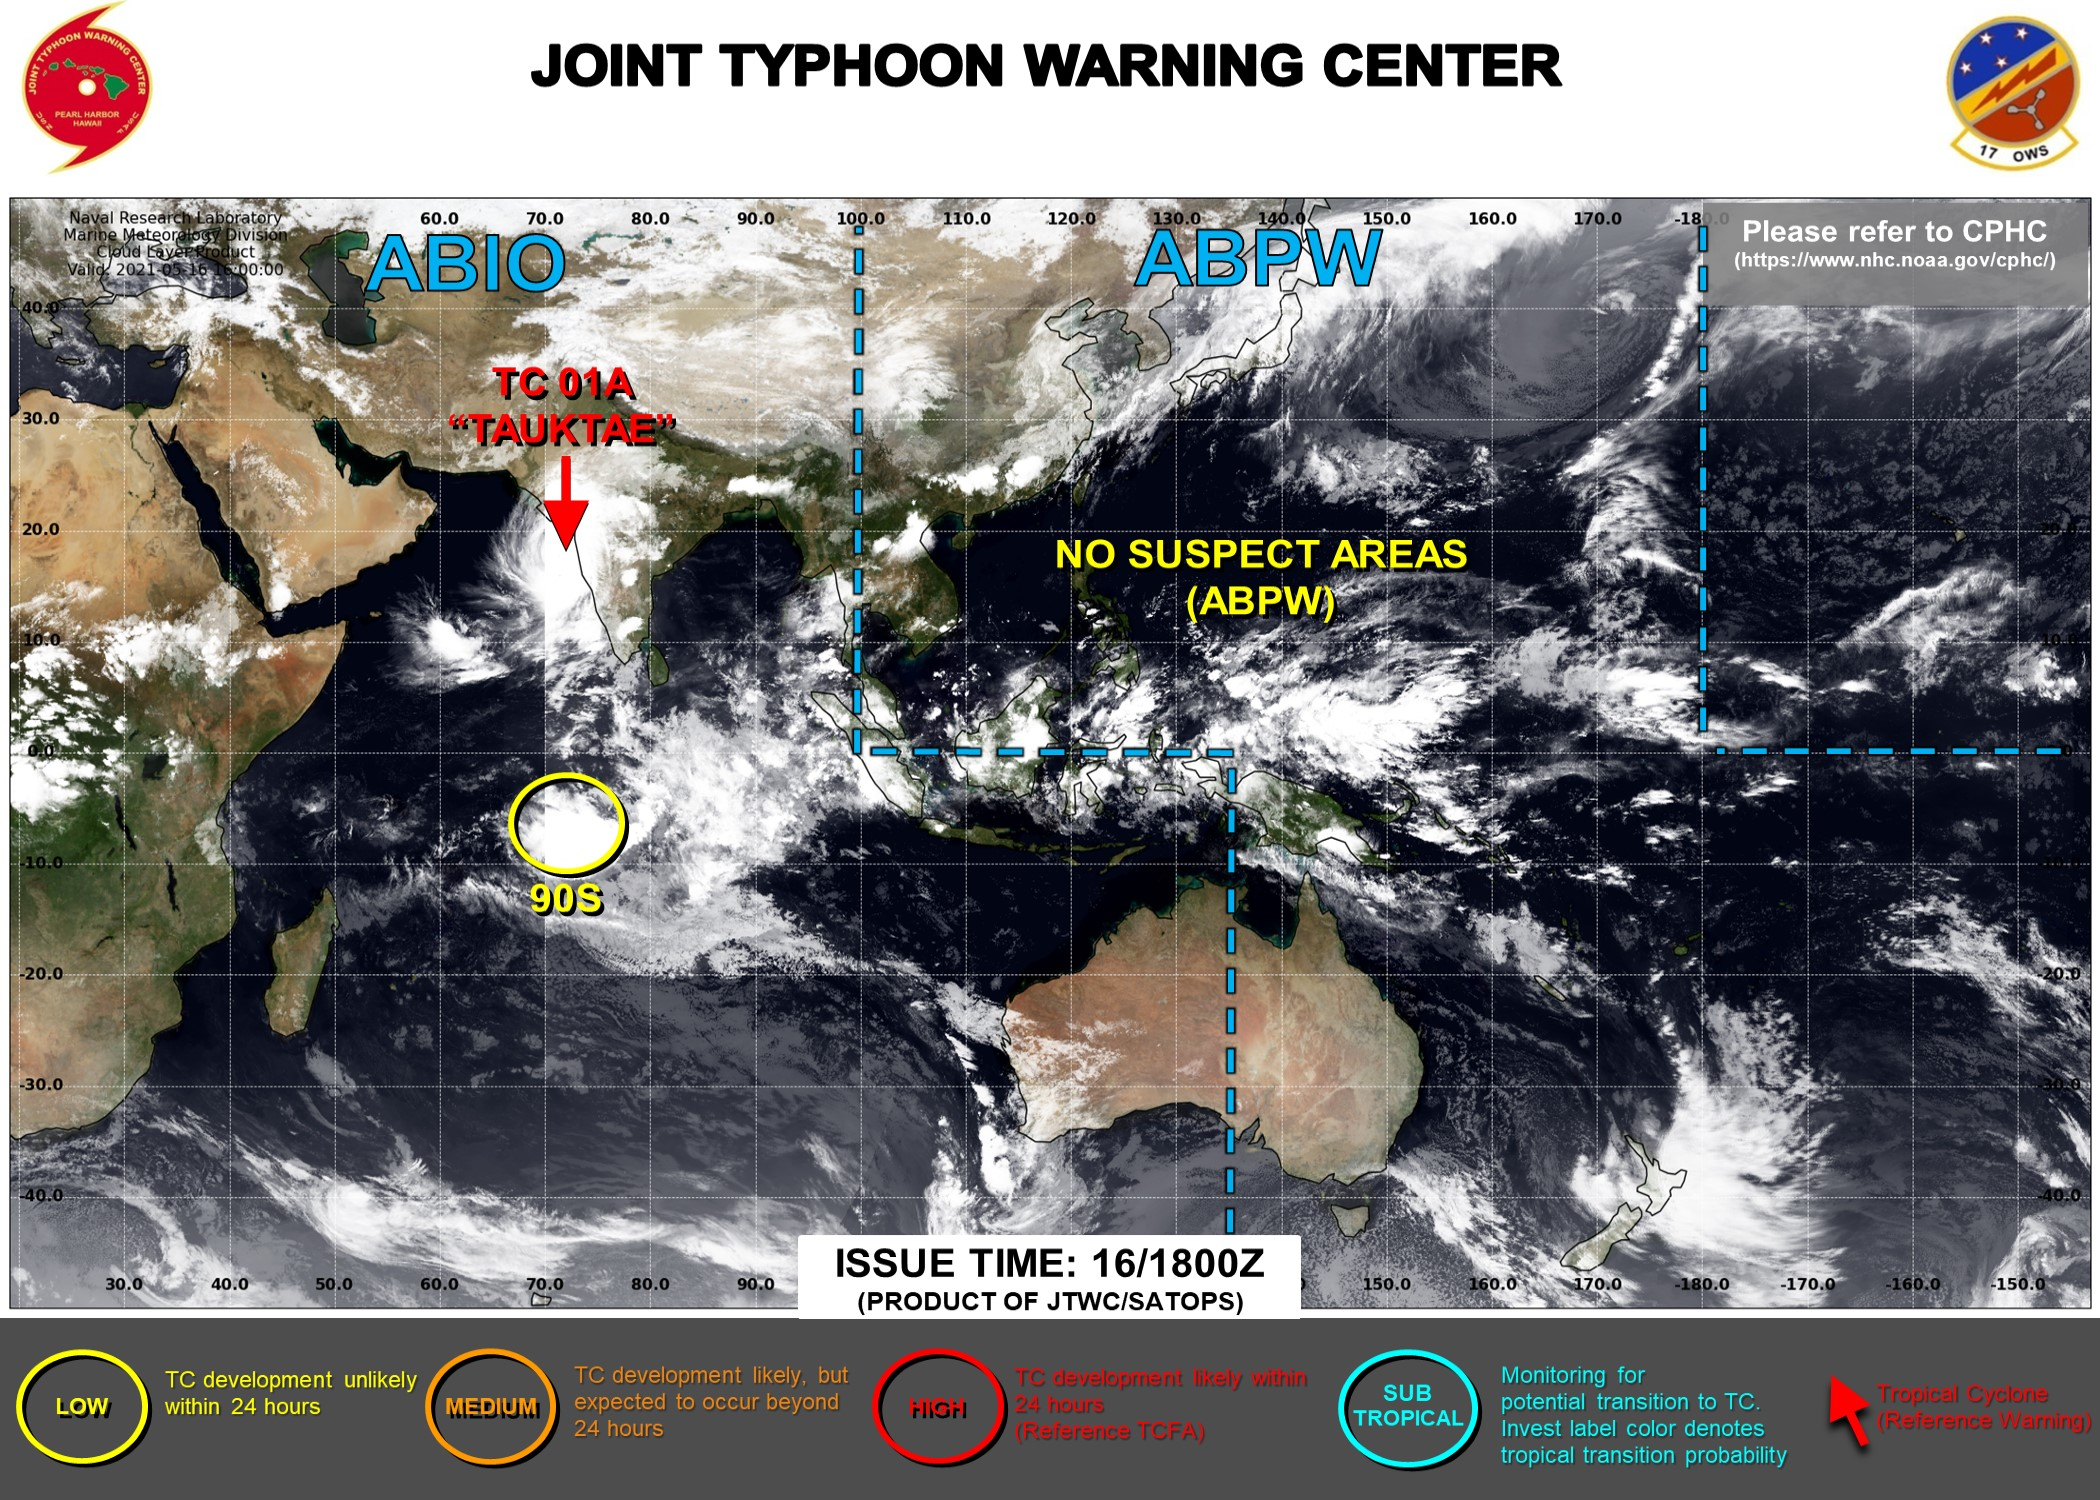 JTWC IS ISSUING 6HOURLY WARNINGS ON TC 01A AND 3HOURLY SATELLITE BULLETINS. INVEST 90S : LOW CHANCES OF HAVING 35KNOT WINDS CLOSE TO ITS CENTER WITHIN 24HOURS.